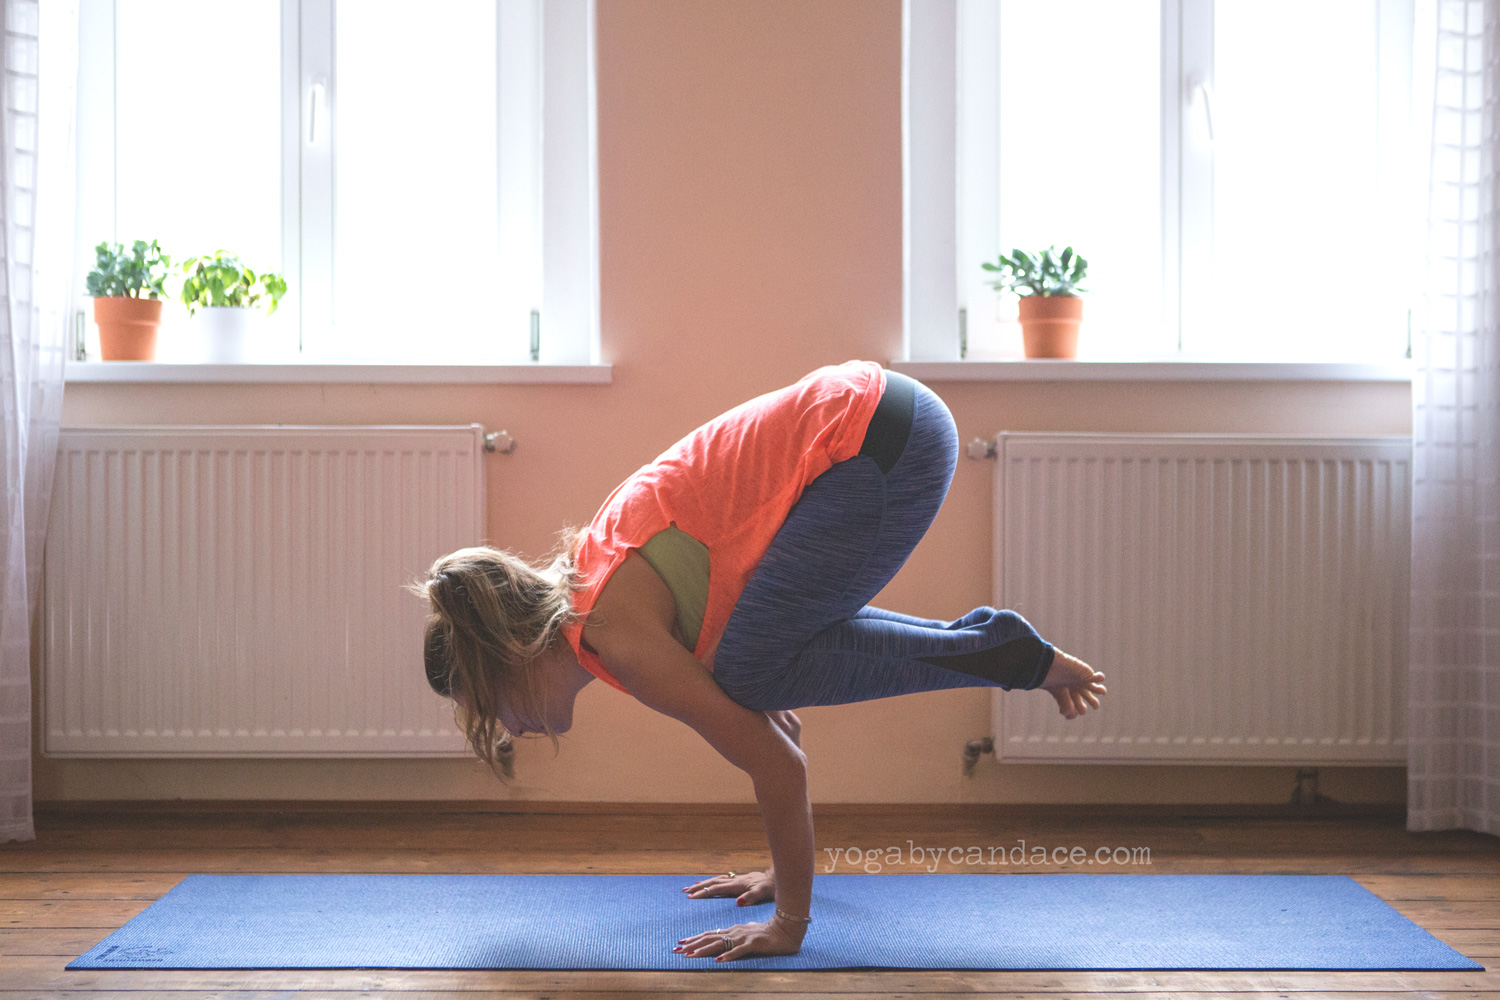 Crow pose wearing  Sweaty Betty leggings  and  top  c/o.